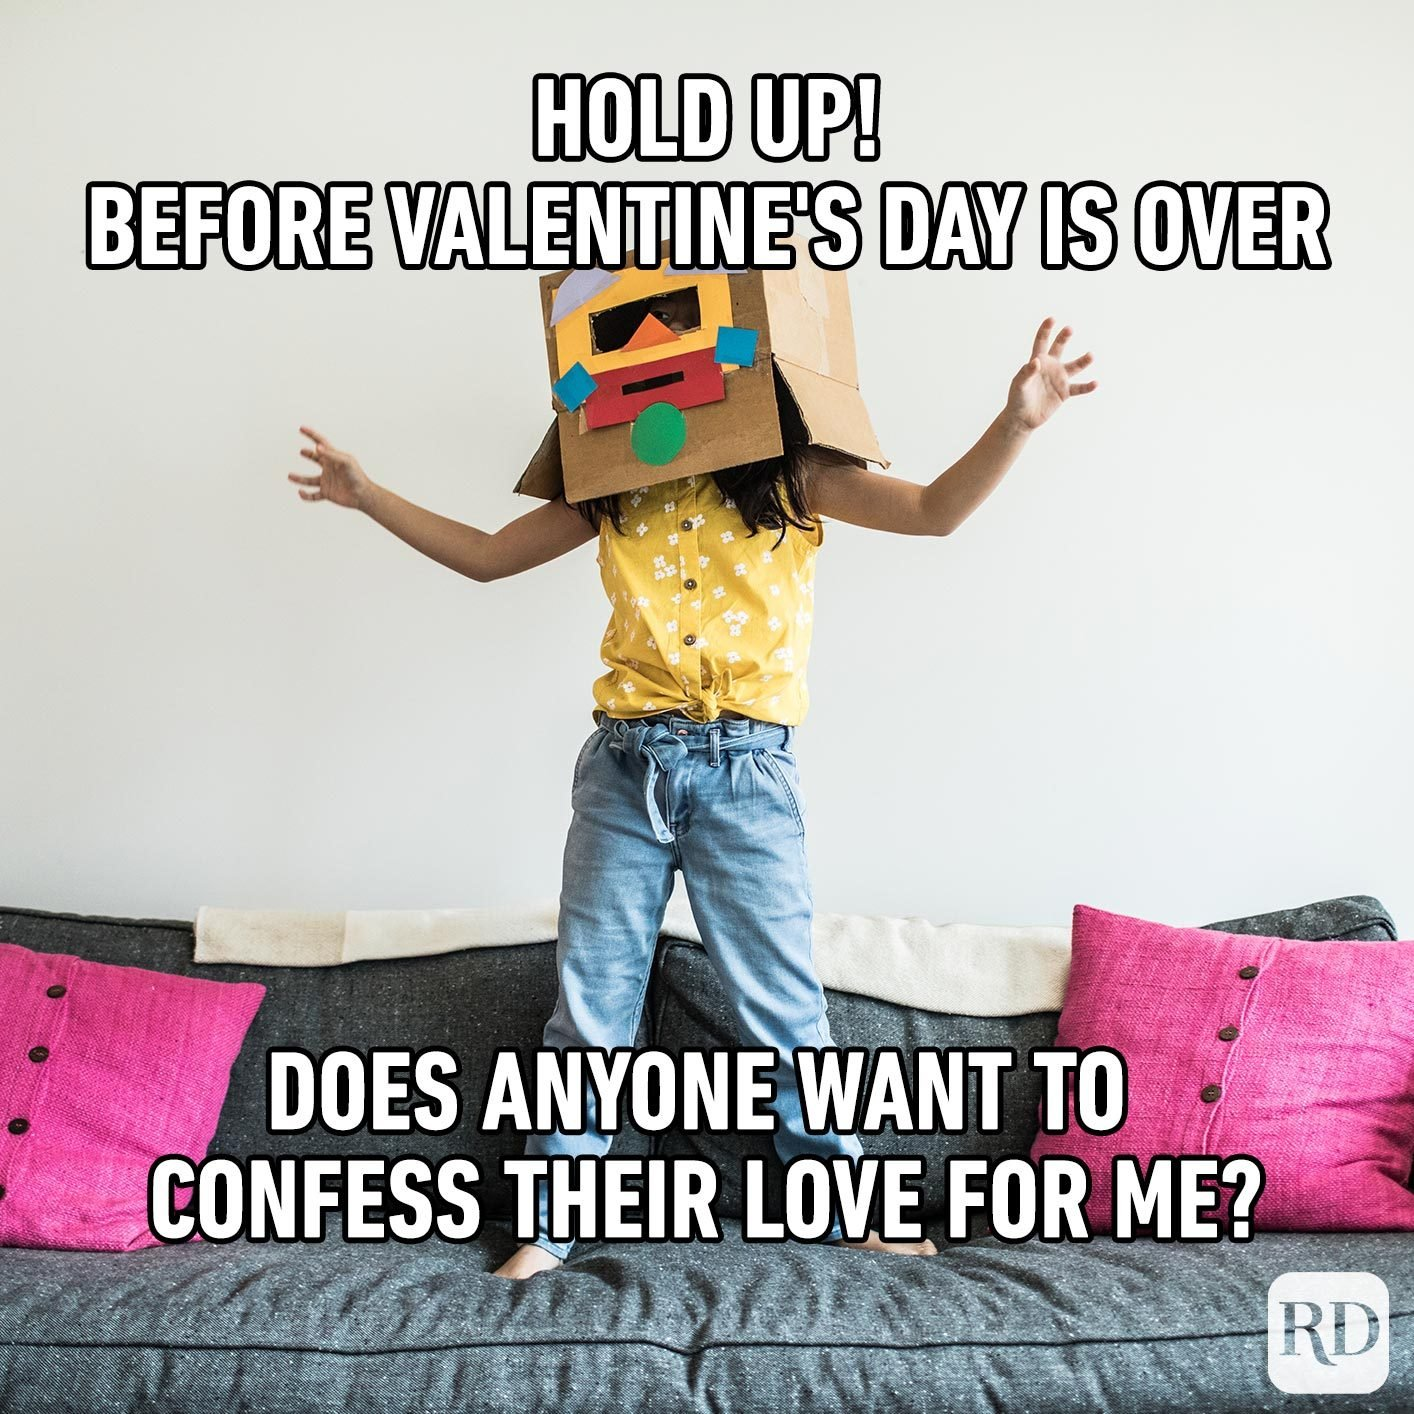 Person wearing robot costume, holding out arms. Meme text: Hold up! Before Valentine's Day is over Does anyone want to confess their love for me?